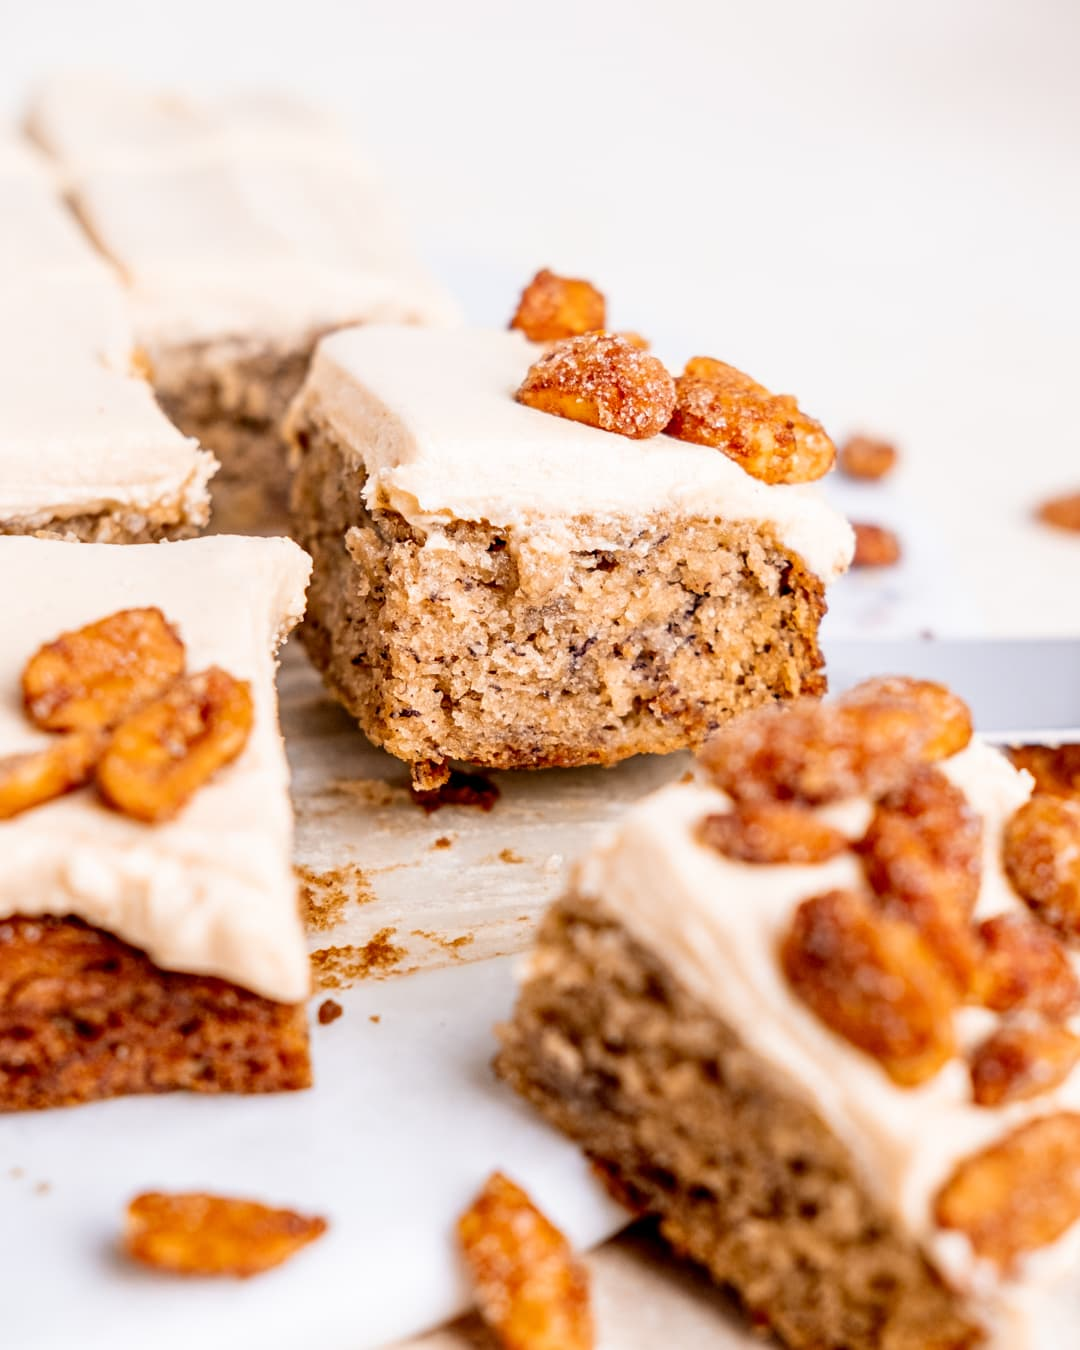 a slice of banana snack cake with frosting and honey glazed peanuts on top